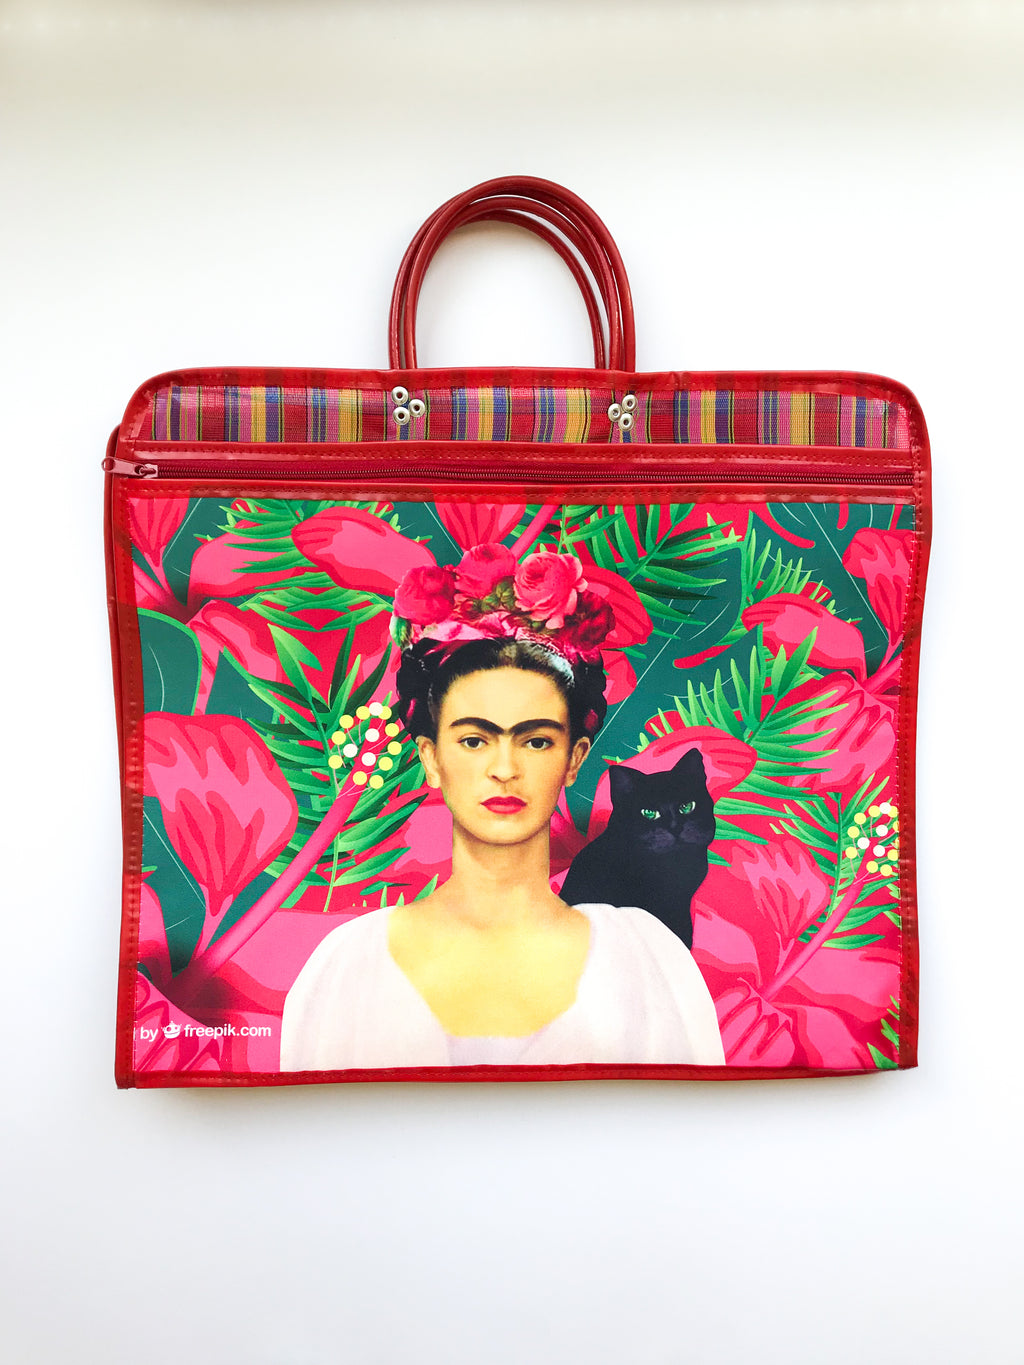 Market Frida red bag